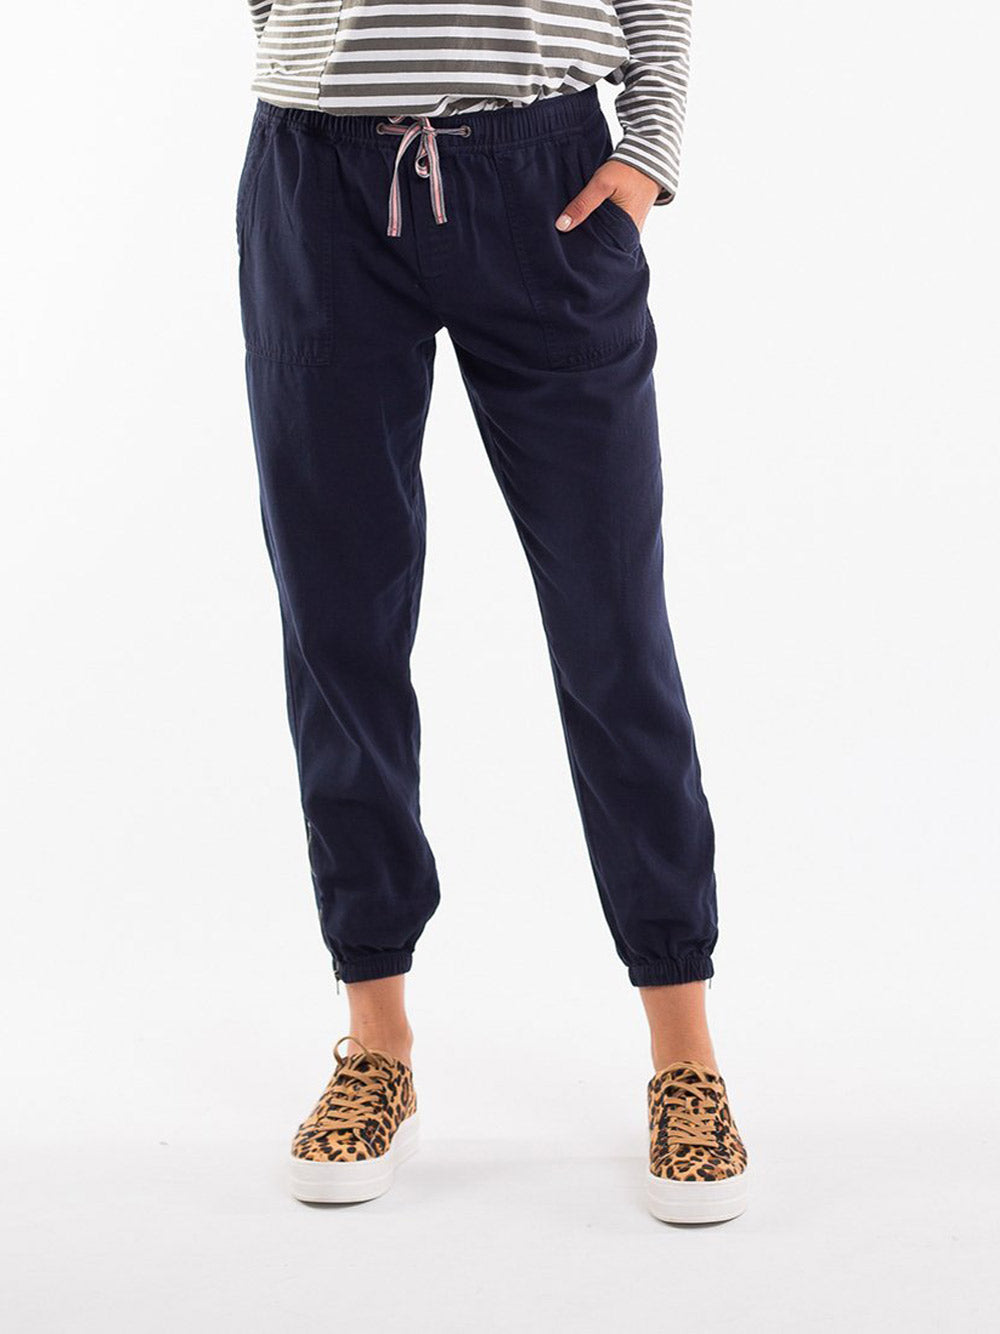 ELM LIFESTYLE Florence Pant - NAVY